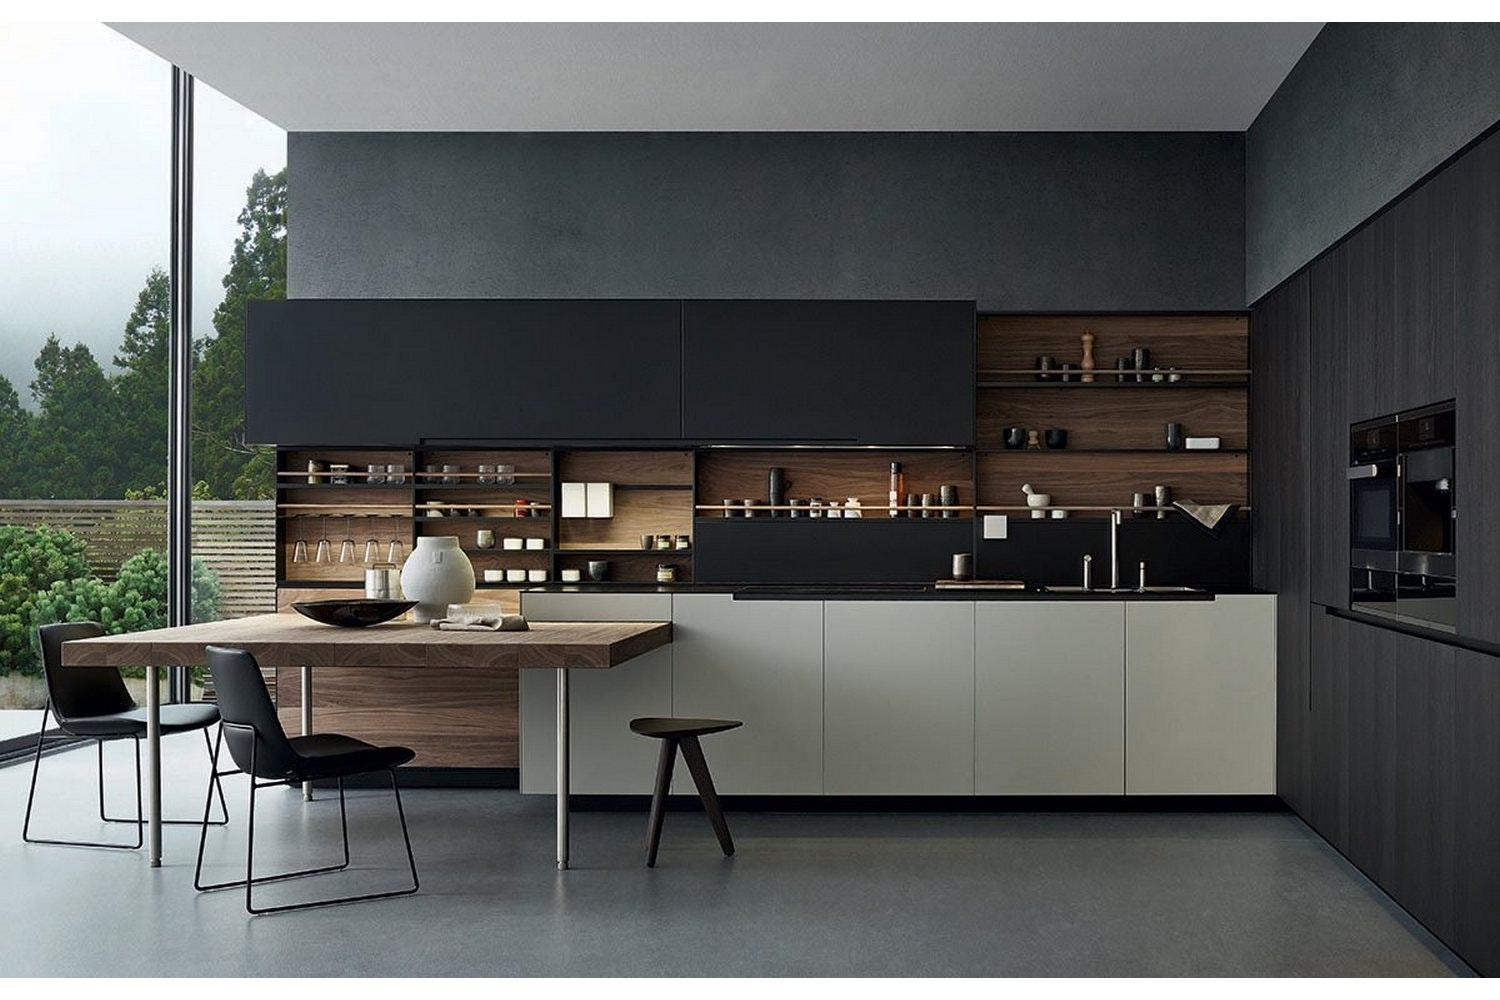 Phoenix Kitchen by R&D Varenna for Poliform